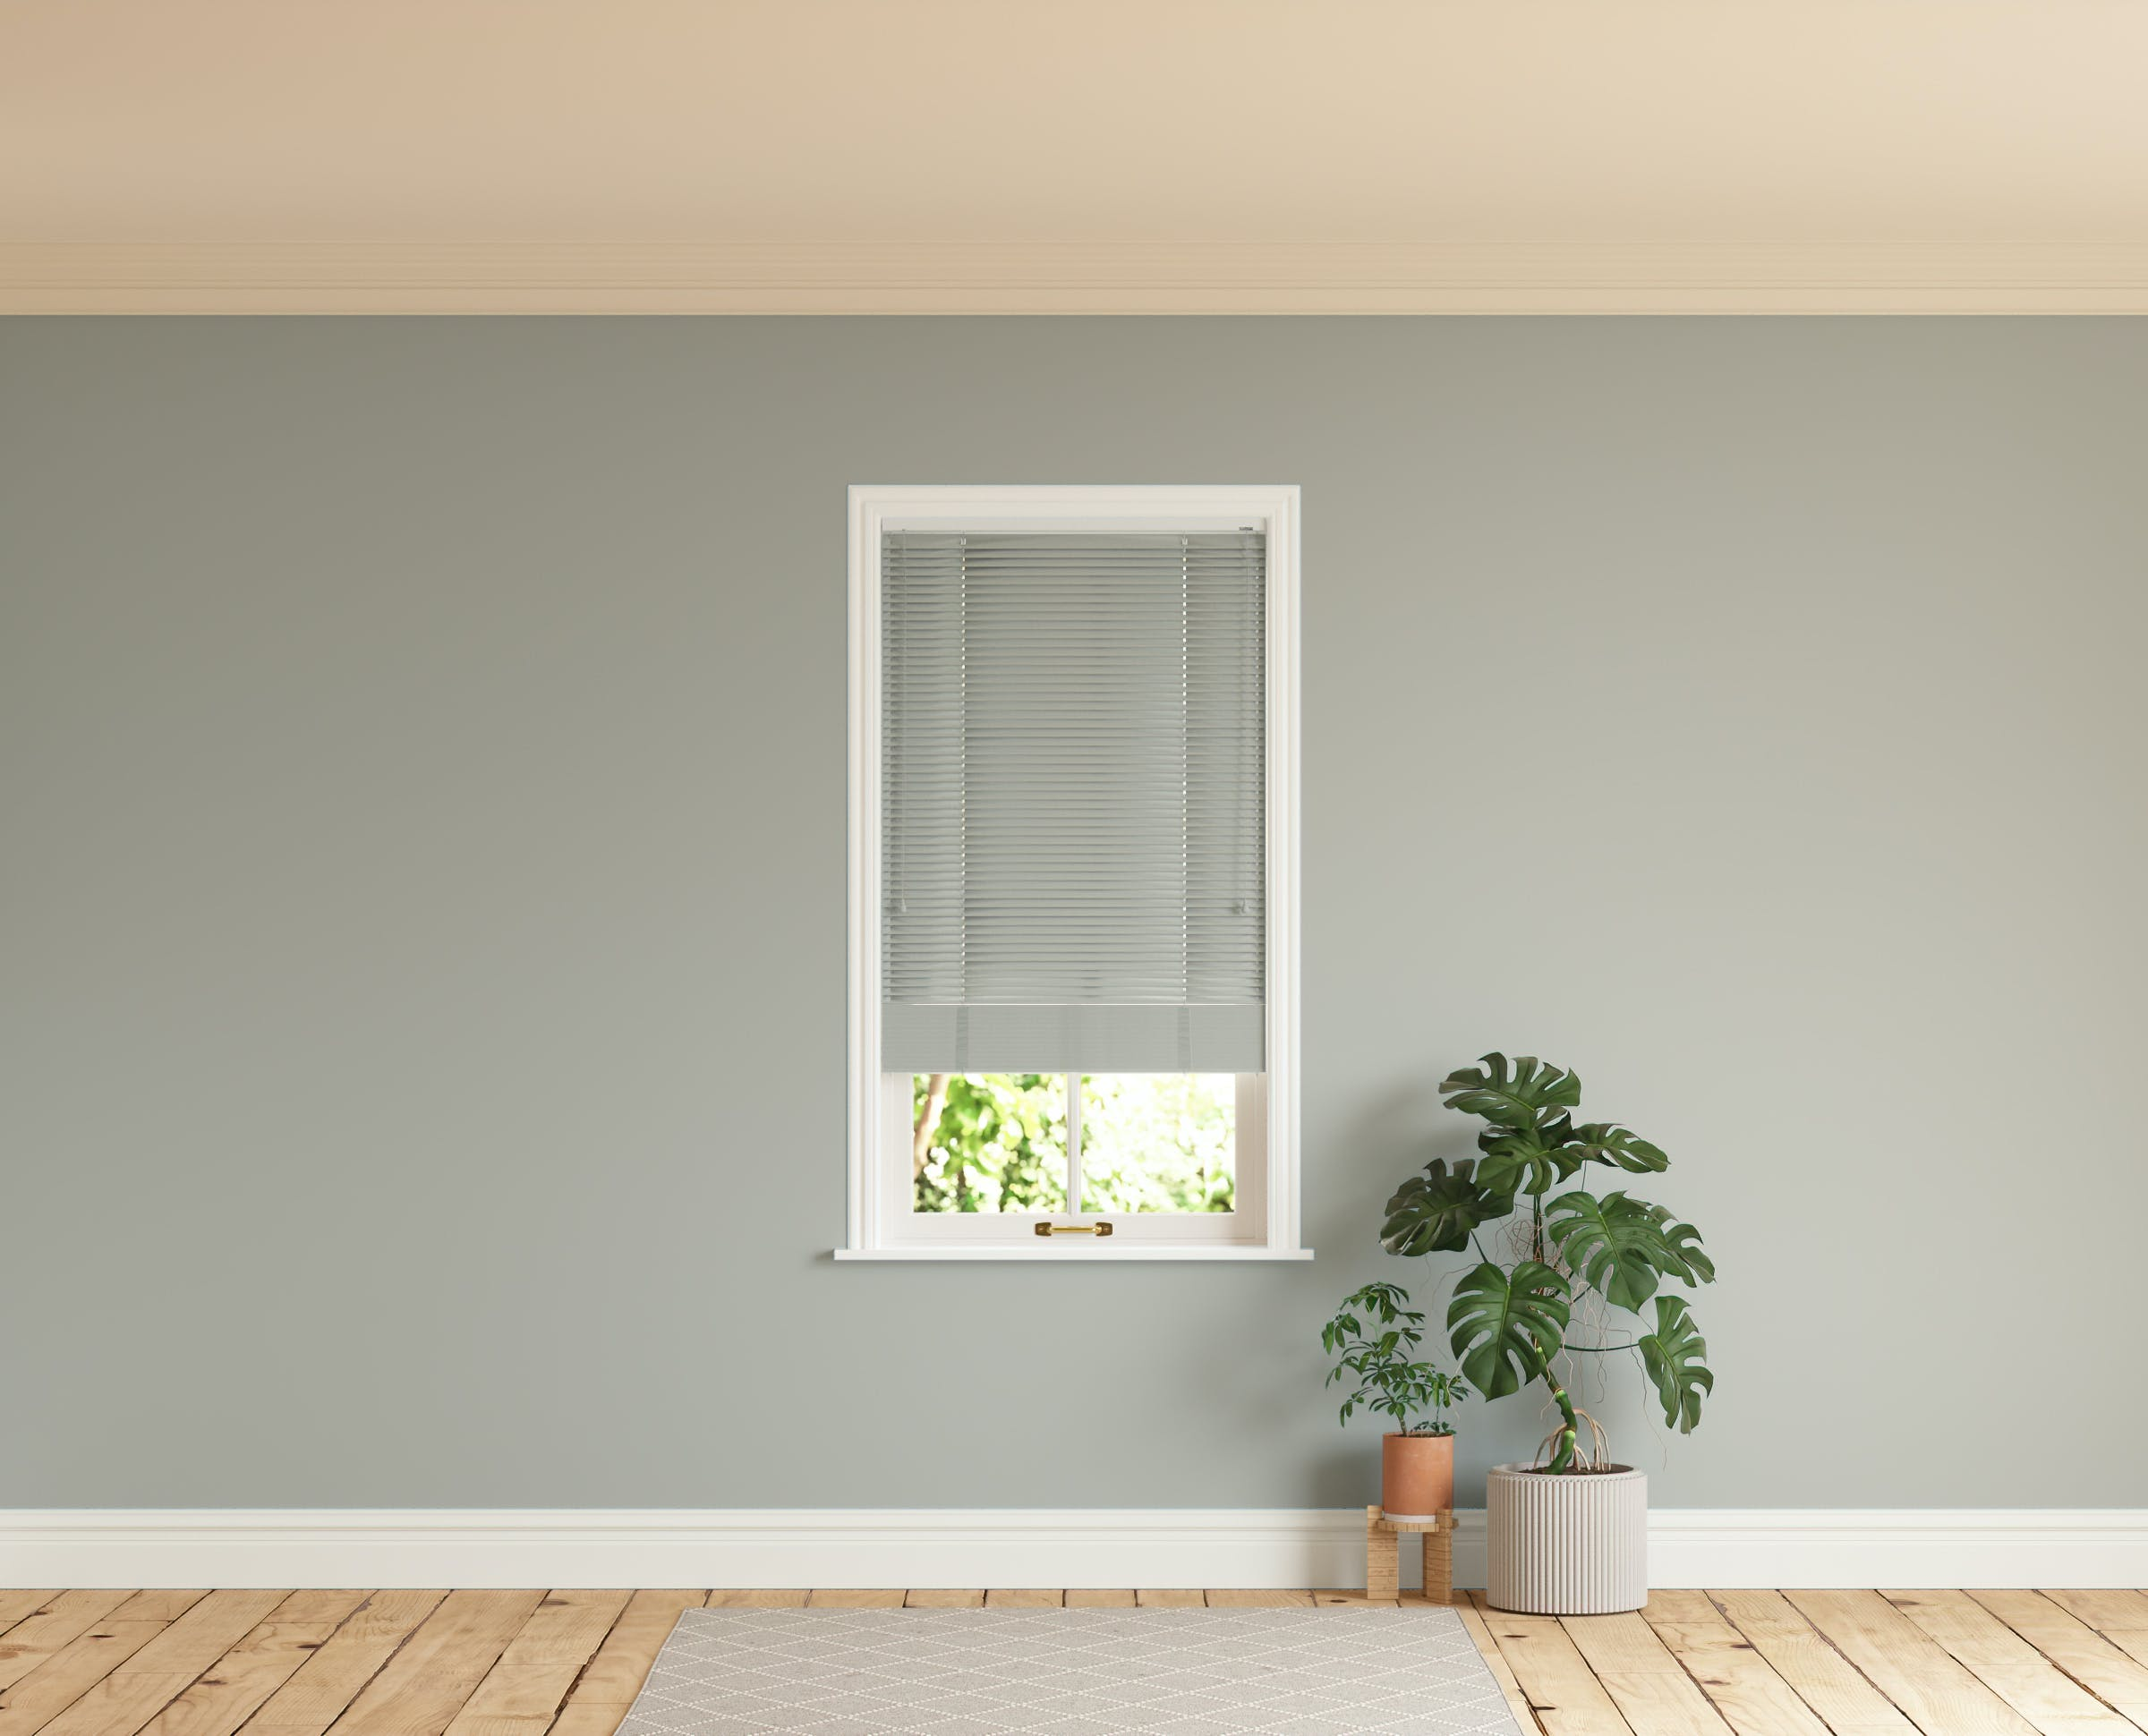 Room with walls painted in Lick Grey 04 and Grey 04 Venetian fine grain blinds